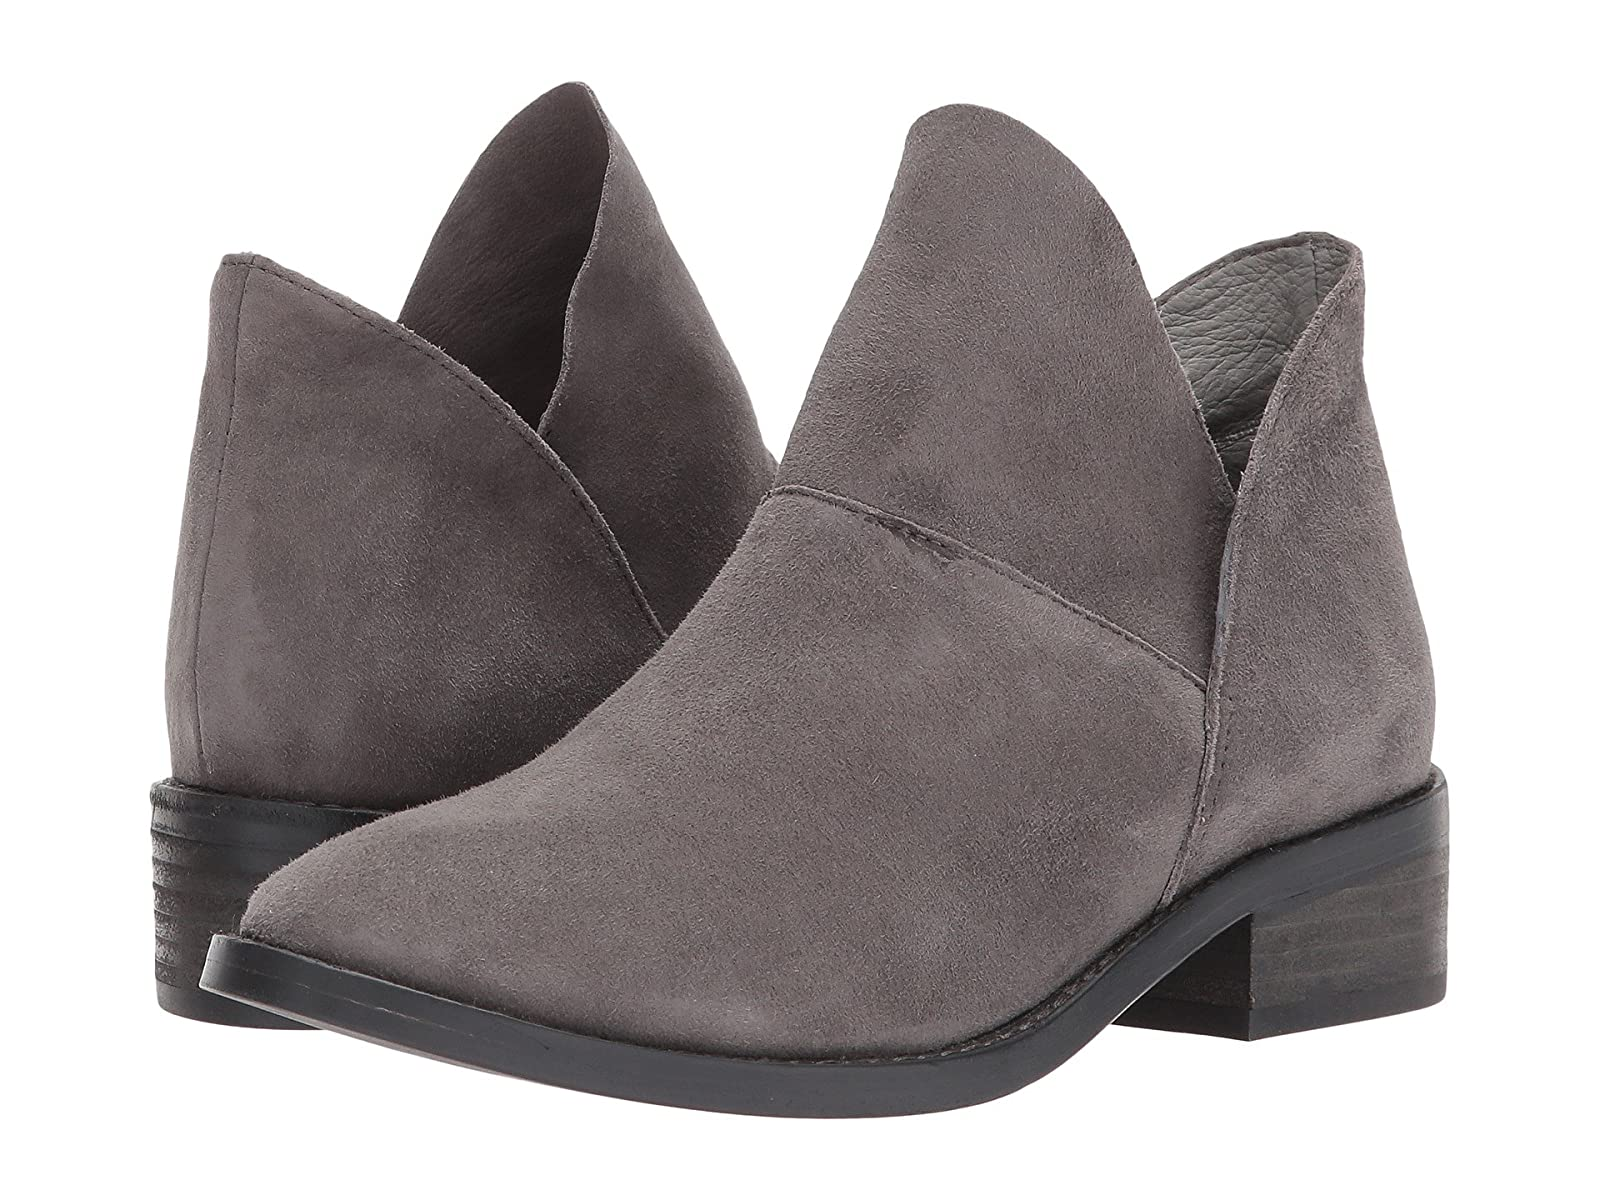 Eileen Fisher LeafCheap and distinctive eye-catching shoes